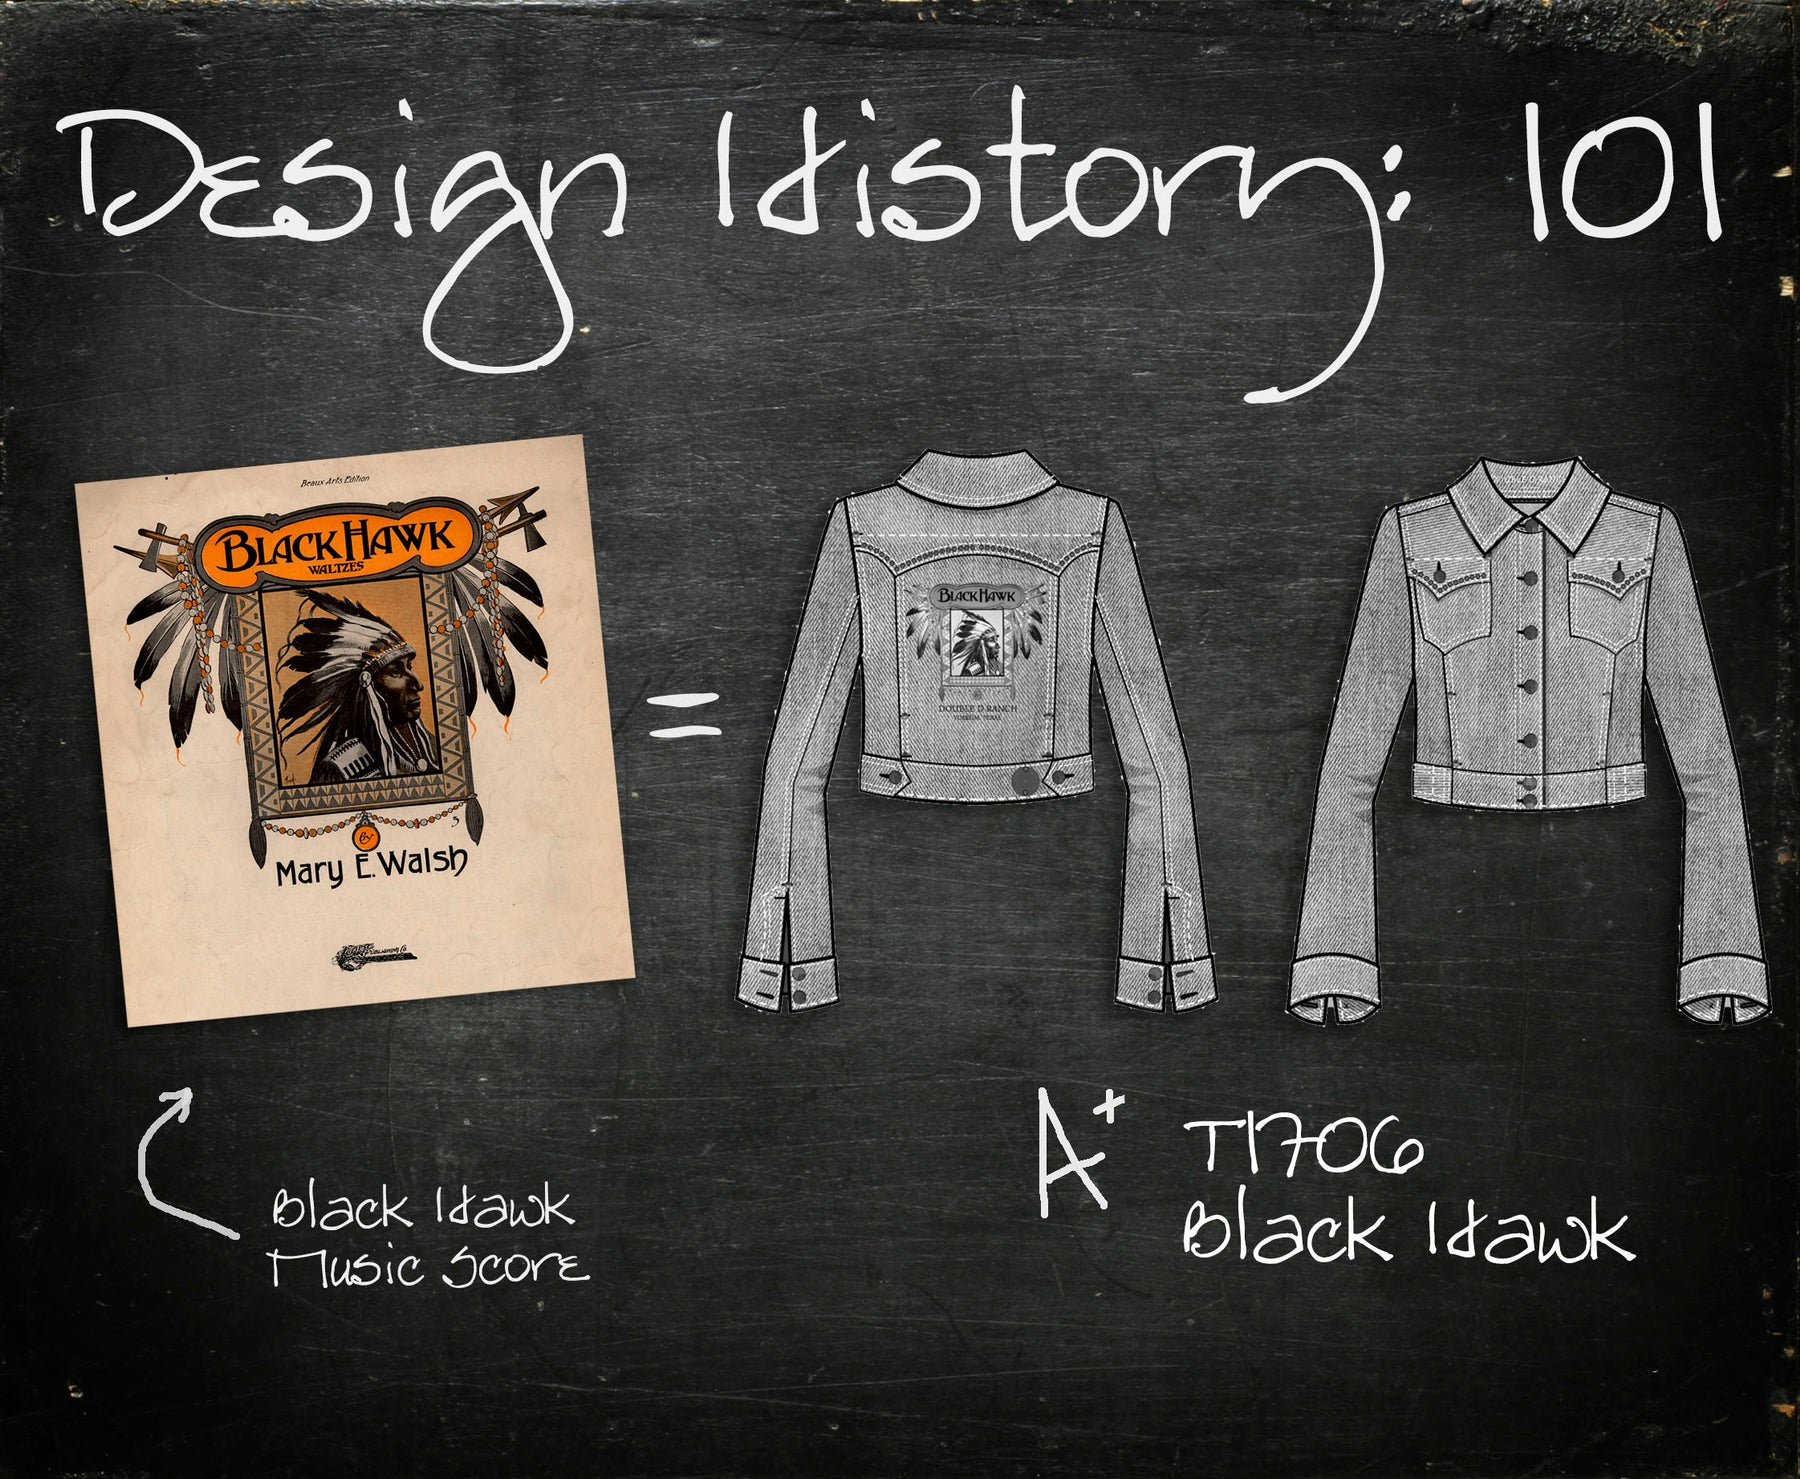 Design History 101: Black Hawk Jacket